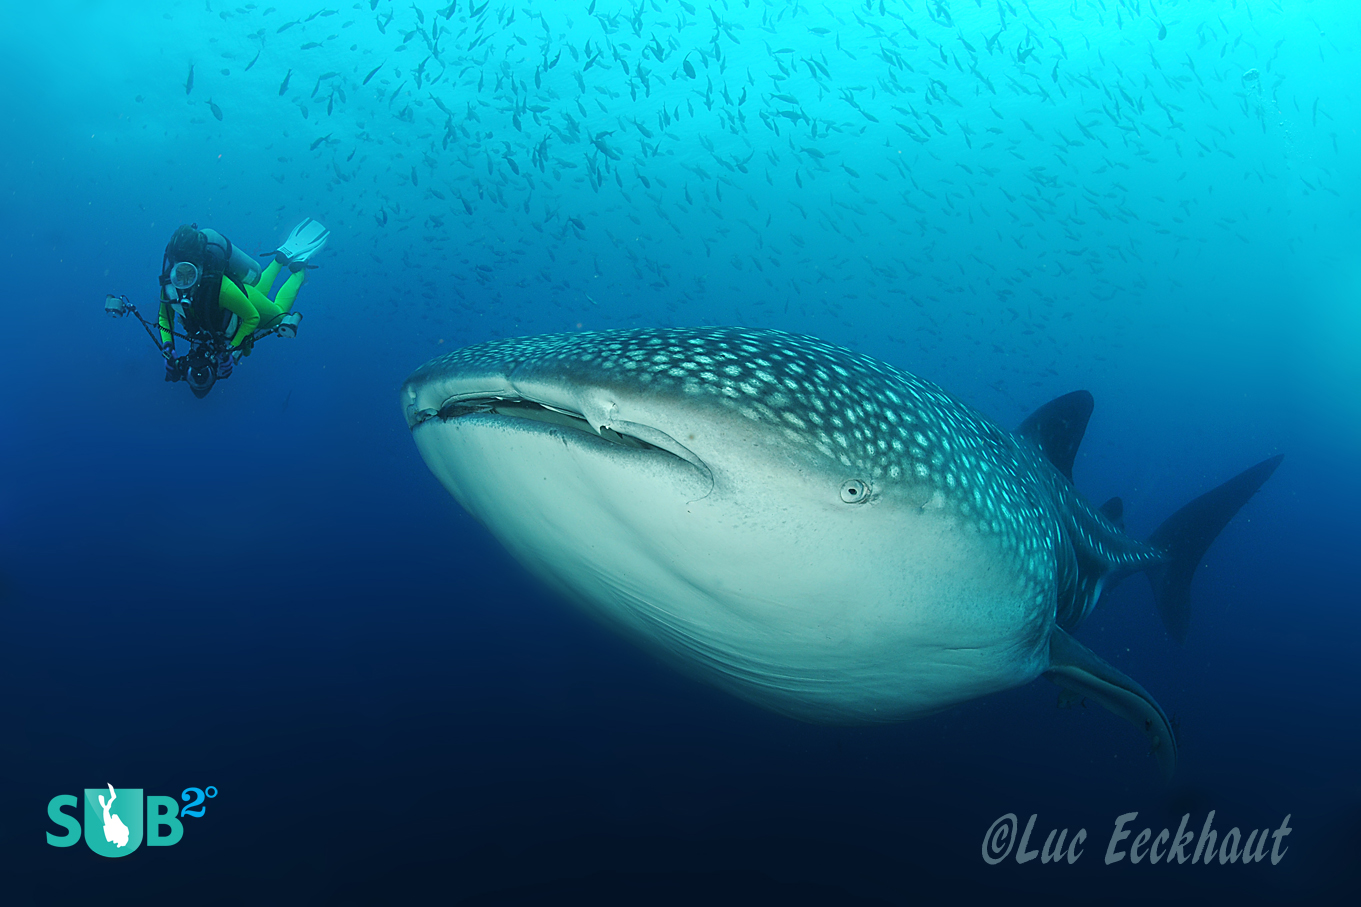 The biggest of all fish, the 20 ton whale shark.